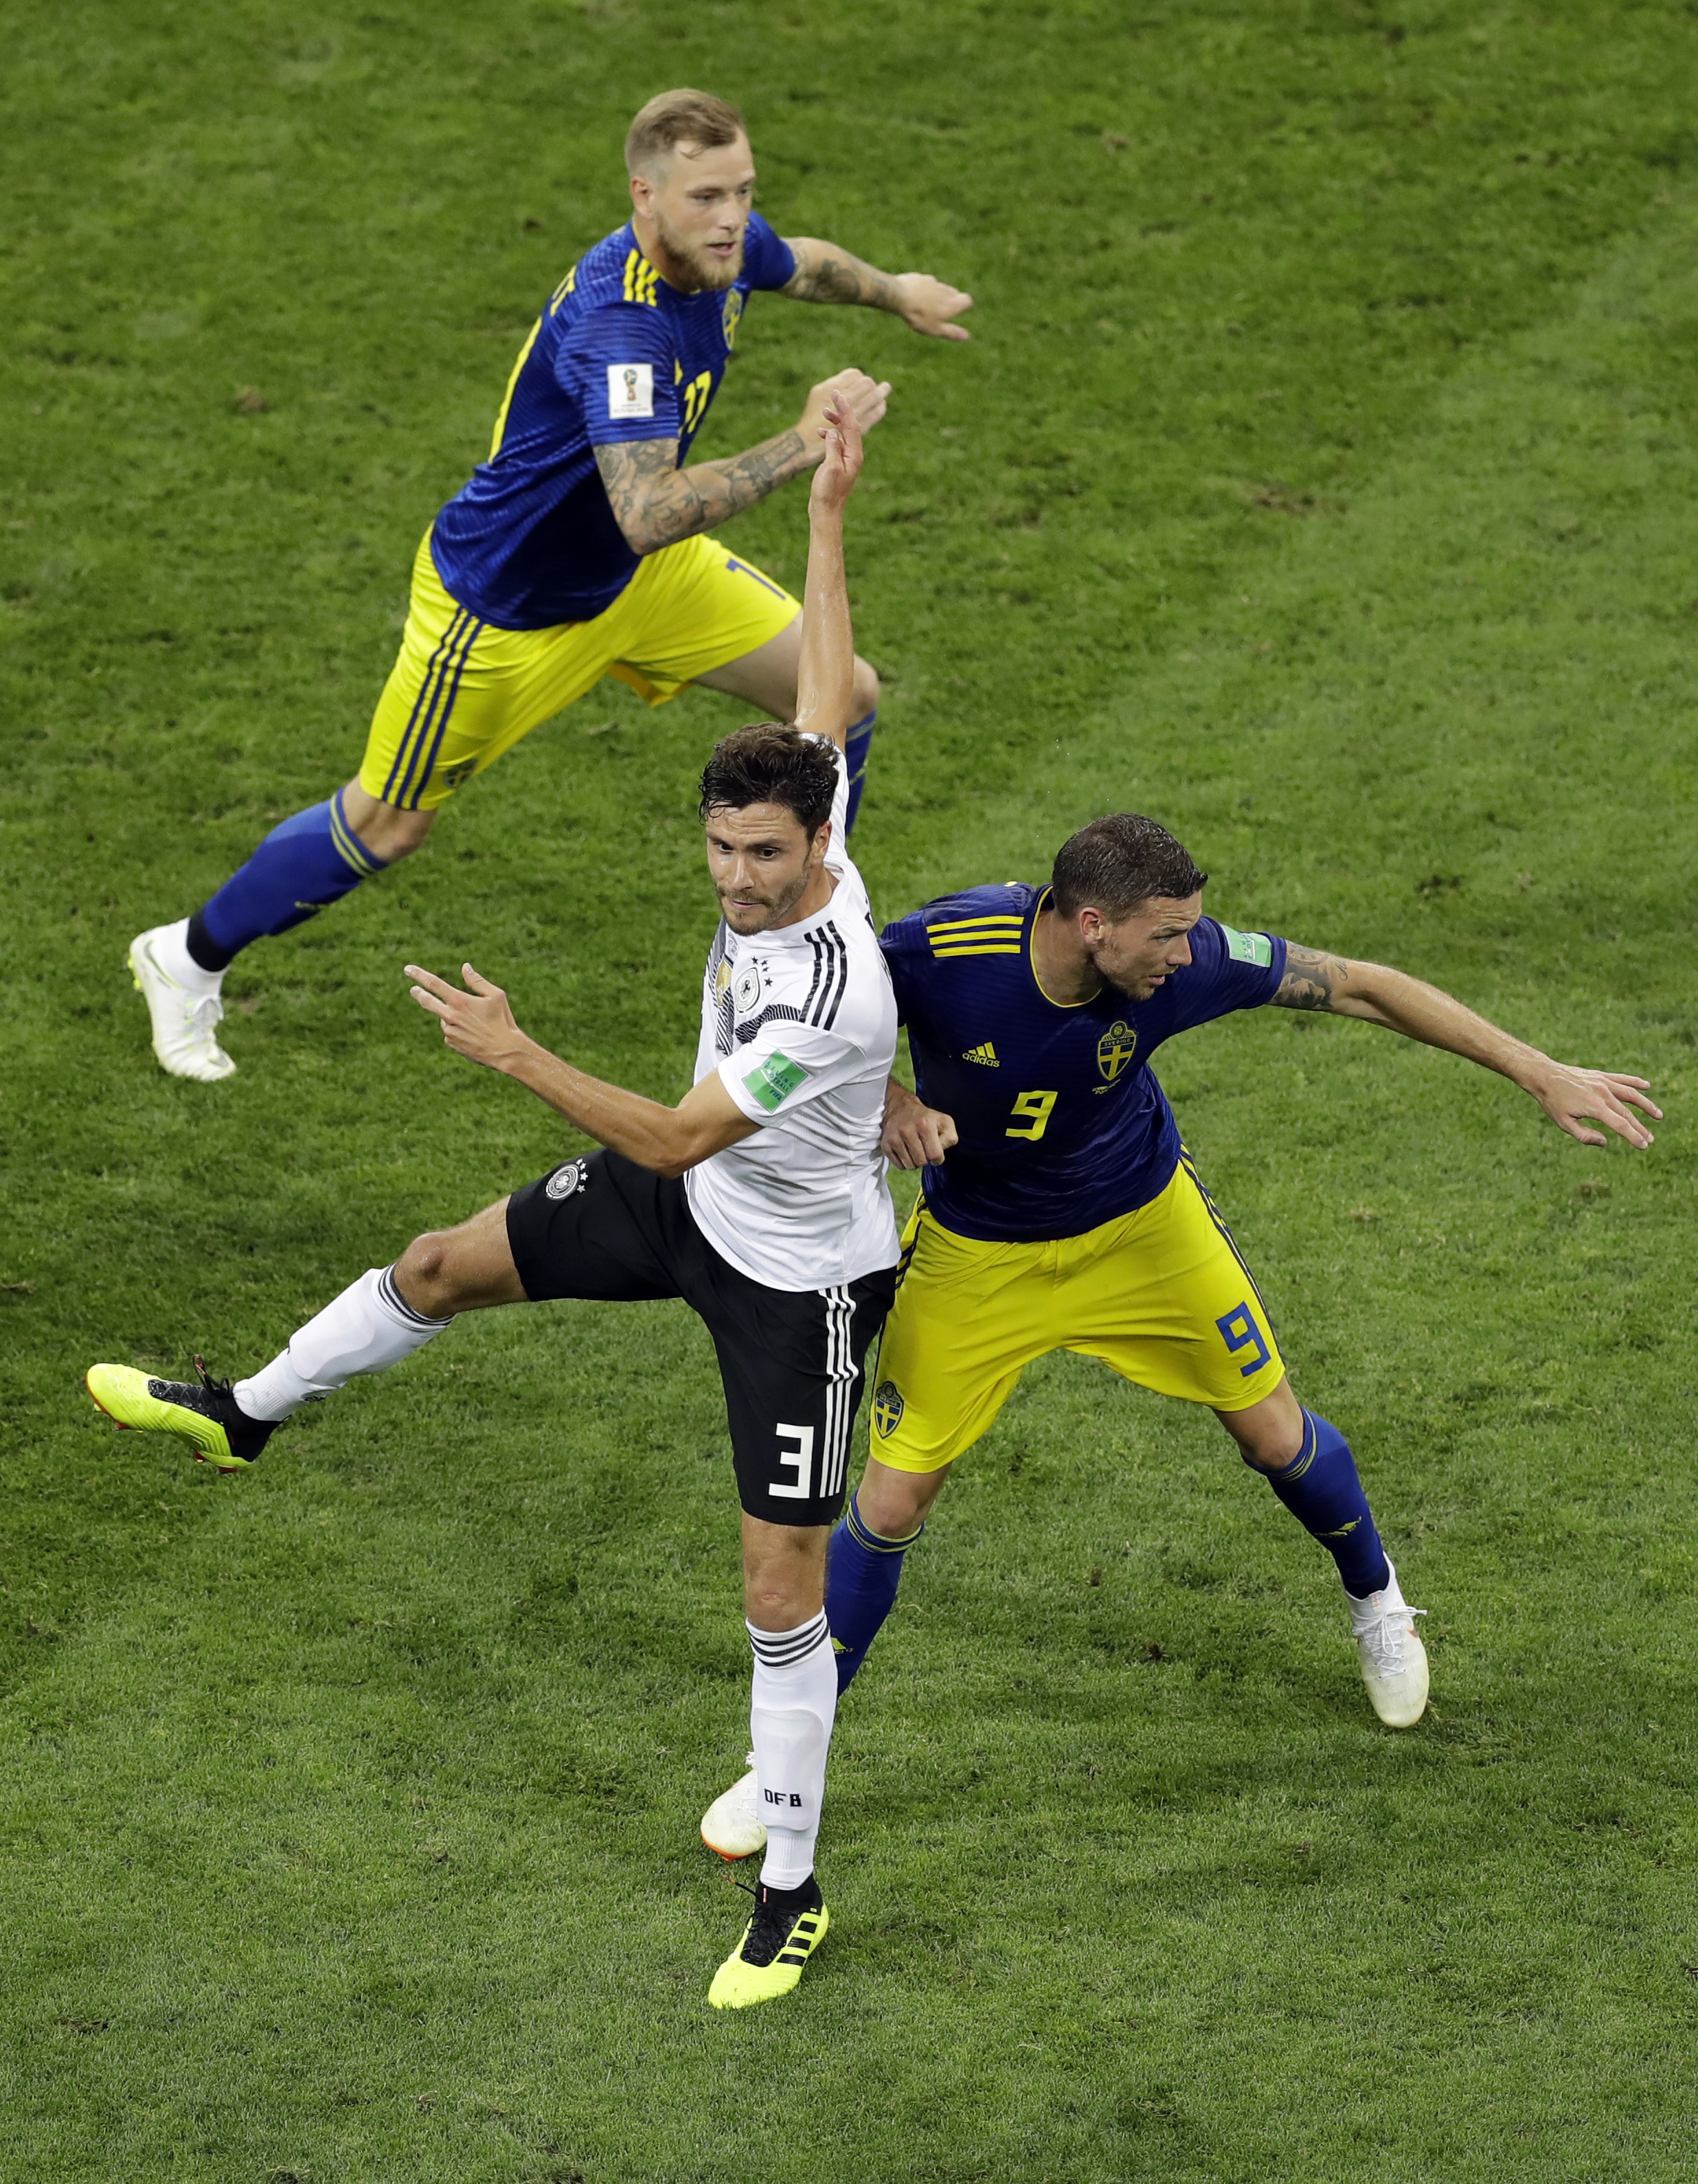 <div class='meta'><div class='origin-logo' data-origin='none'></div><span class='caption-text' data-credit='Sergei Grits/AP Photo'>Germany's Jonas Hector, left, collides with Sweden's Marcus Berg during the group F match in the Fisht Stadium in Sochi, Russia, Saturday, June 23, 2018.</span></div>